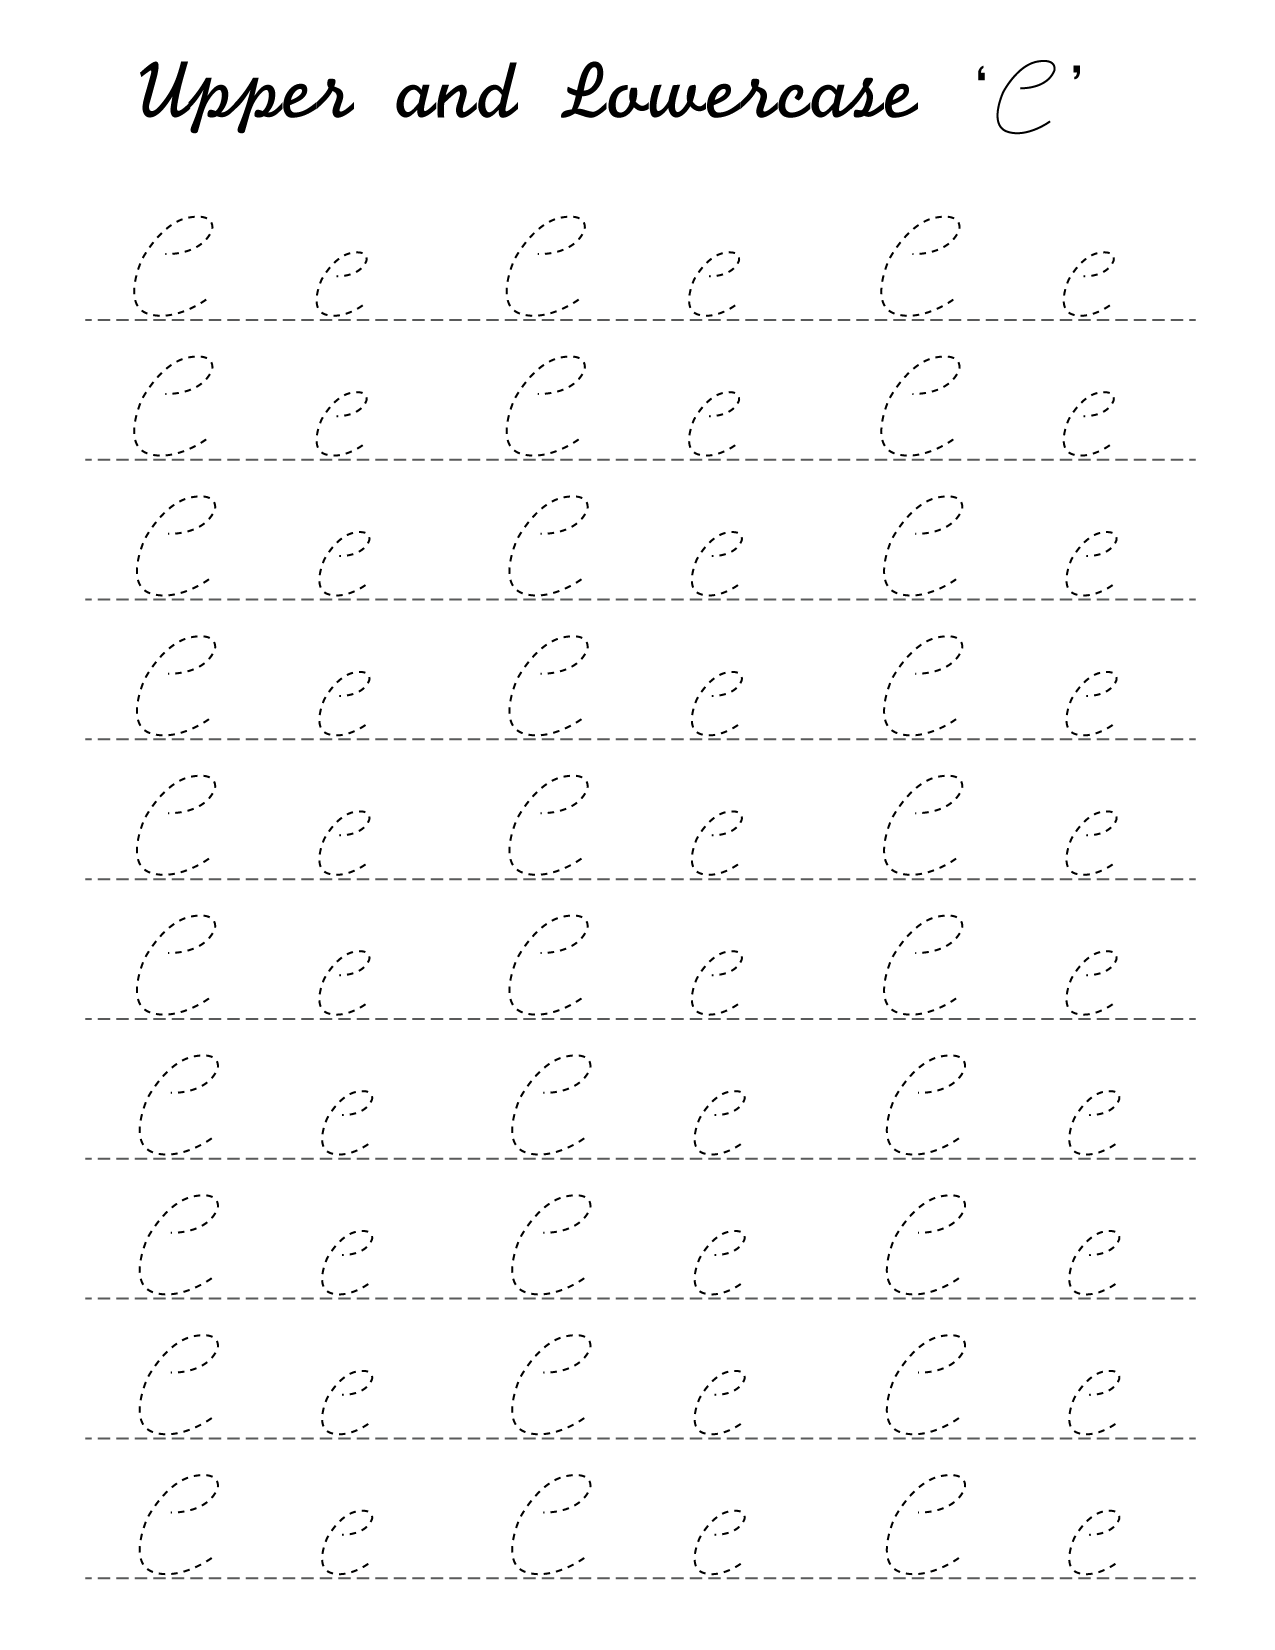 Cursive 'C' worksheet